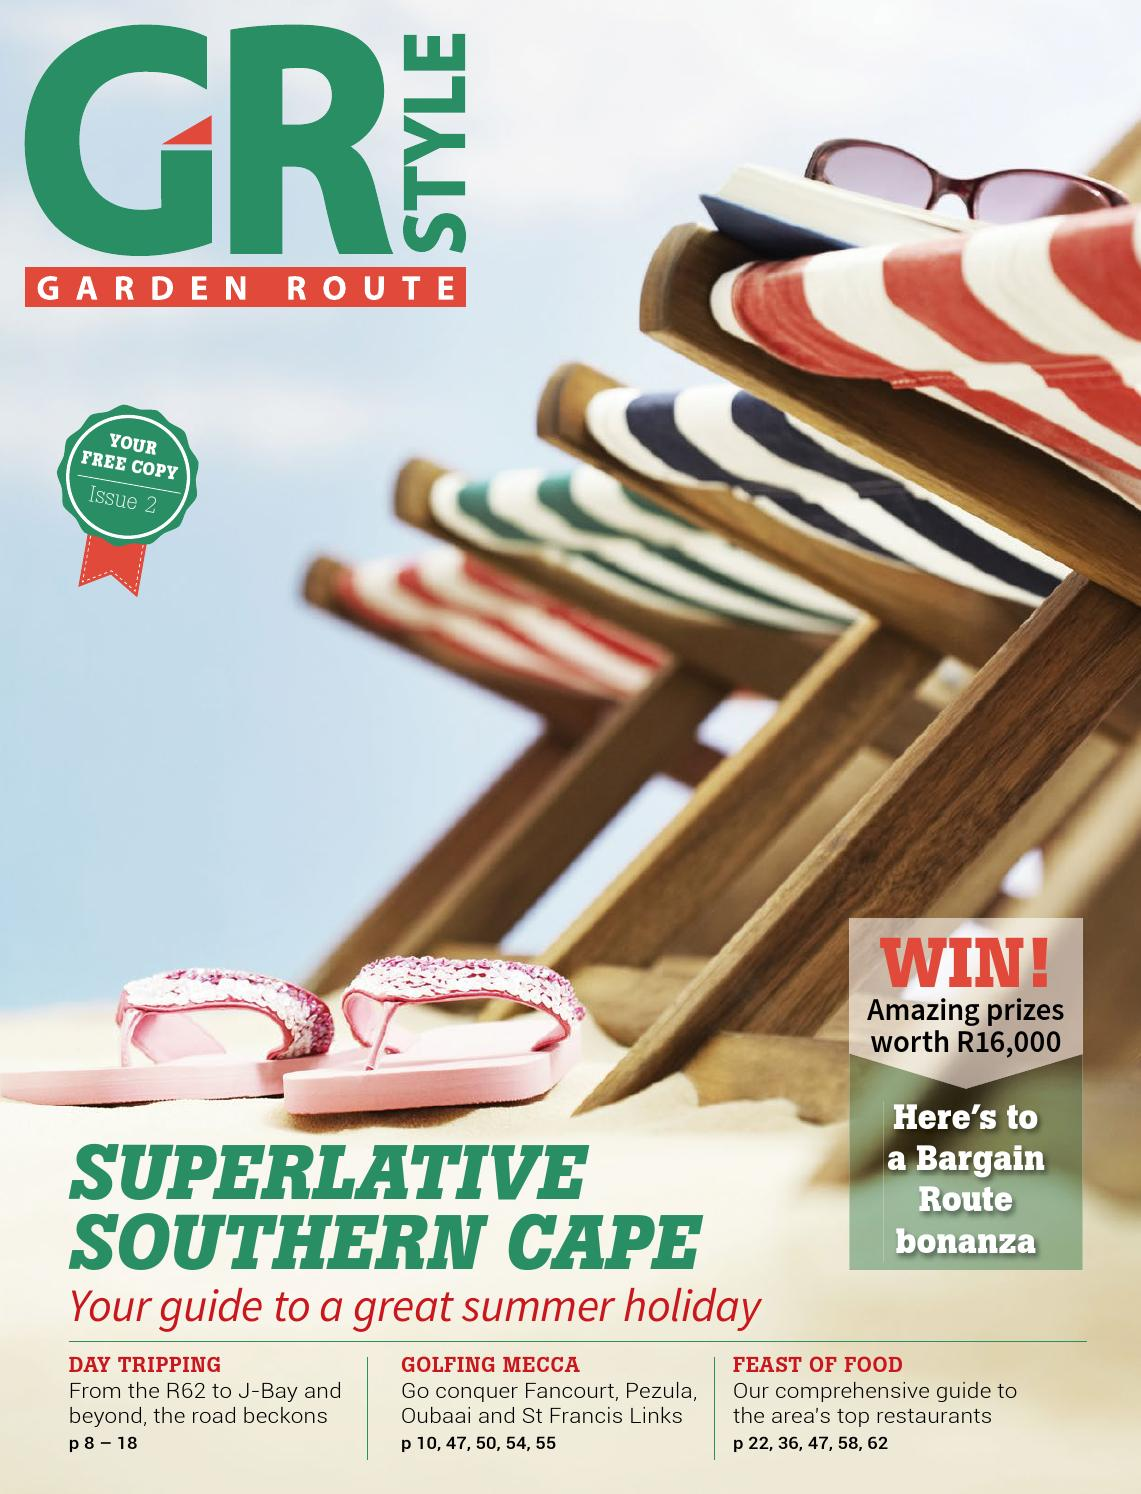 Cucina Restaurant Oubaai Menu Garden Route Style Supplement 2014 By Ballyhoo Media Issuu